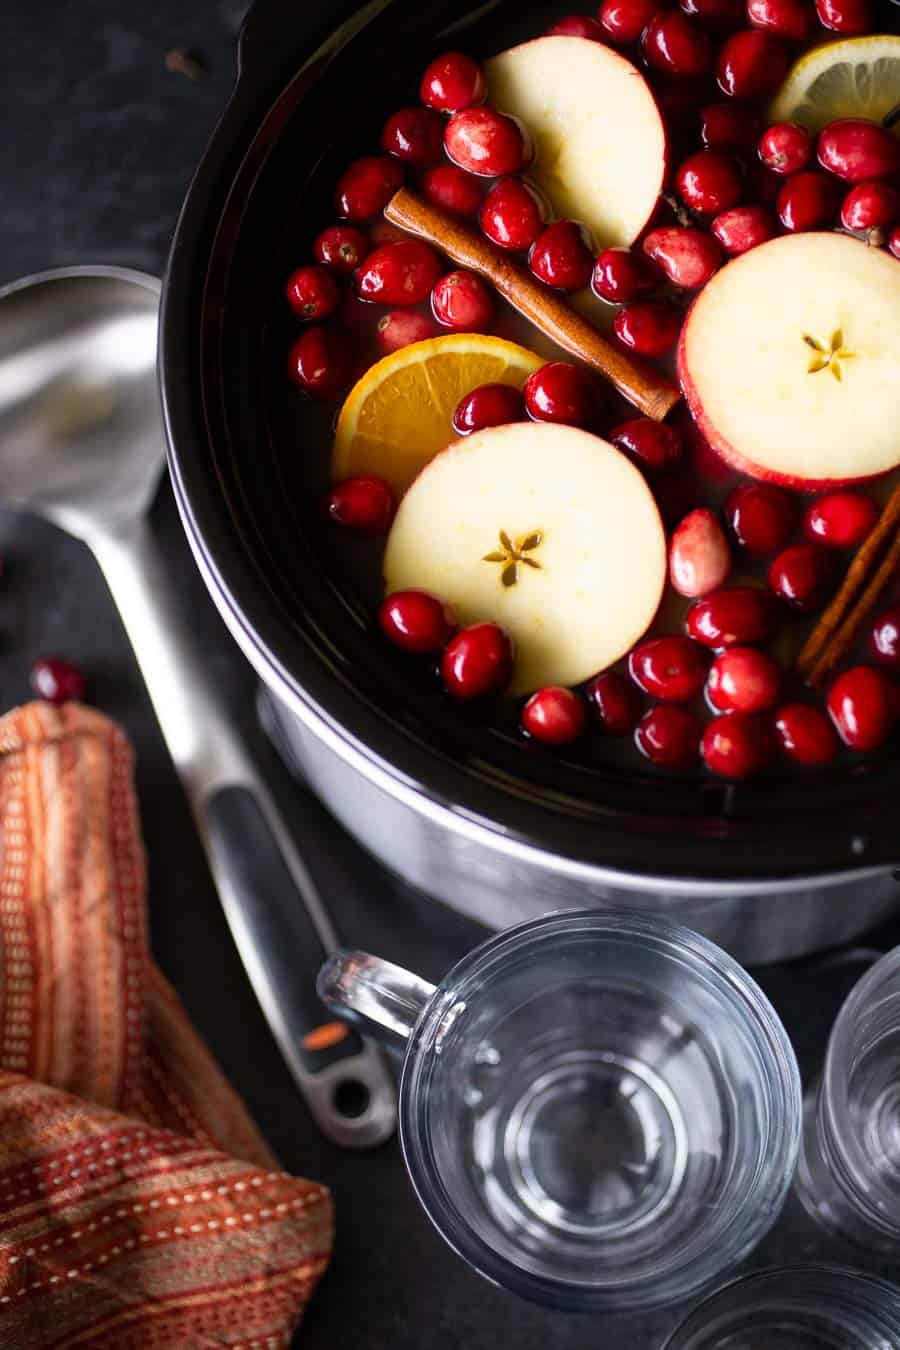 How to Make Irresistible Slow-Cooker Mulled Cider